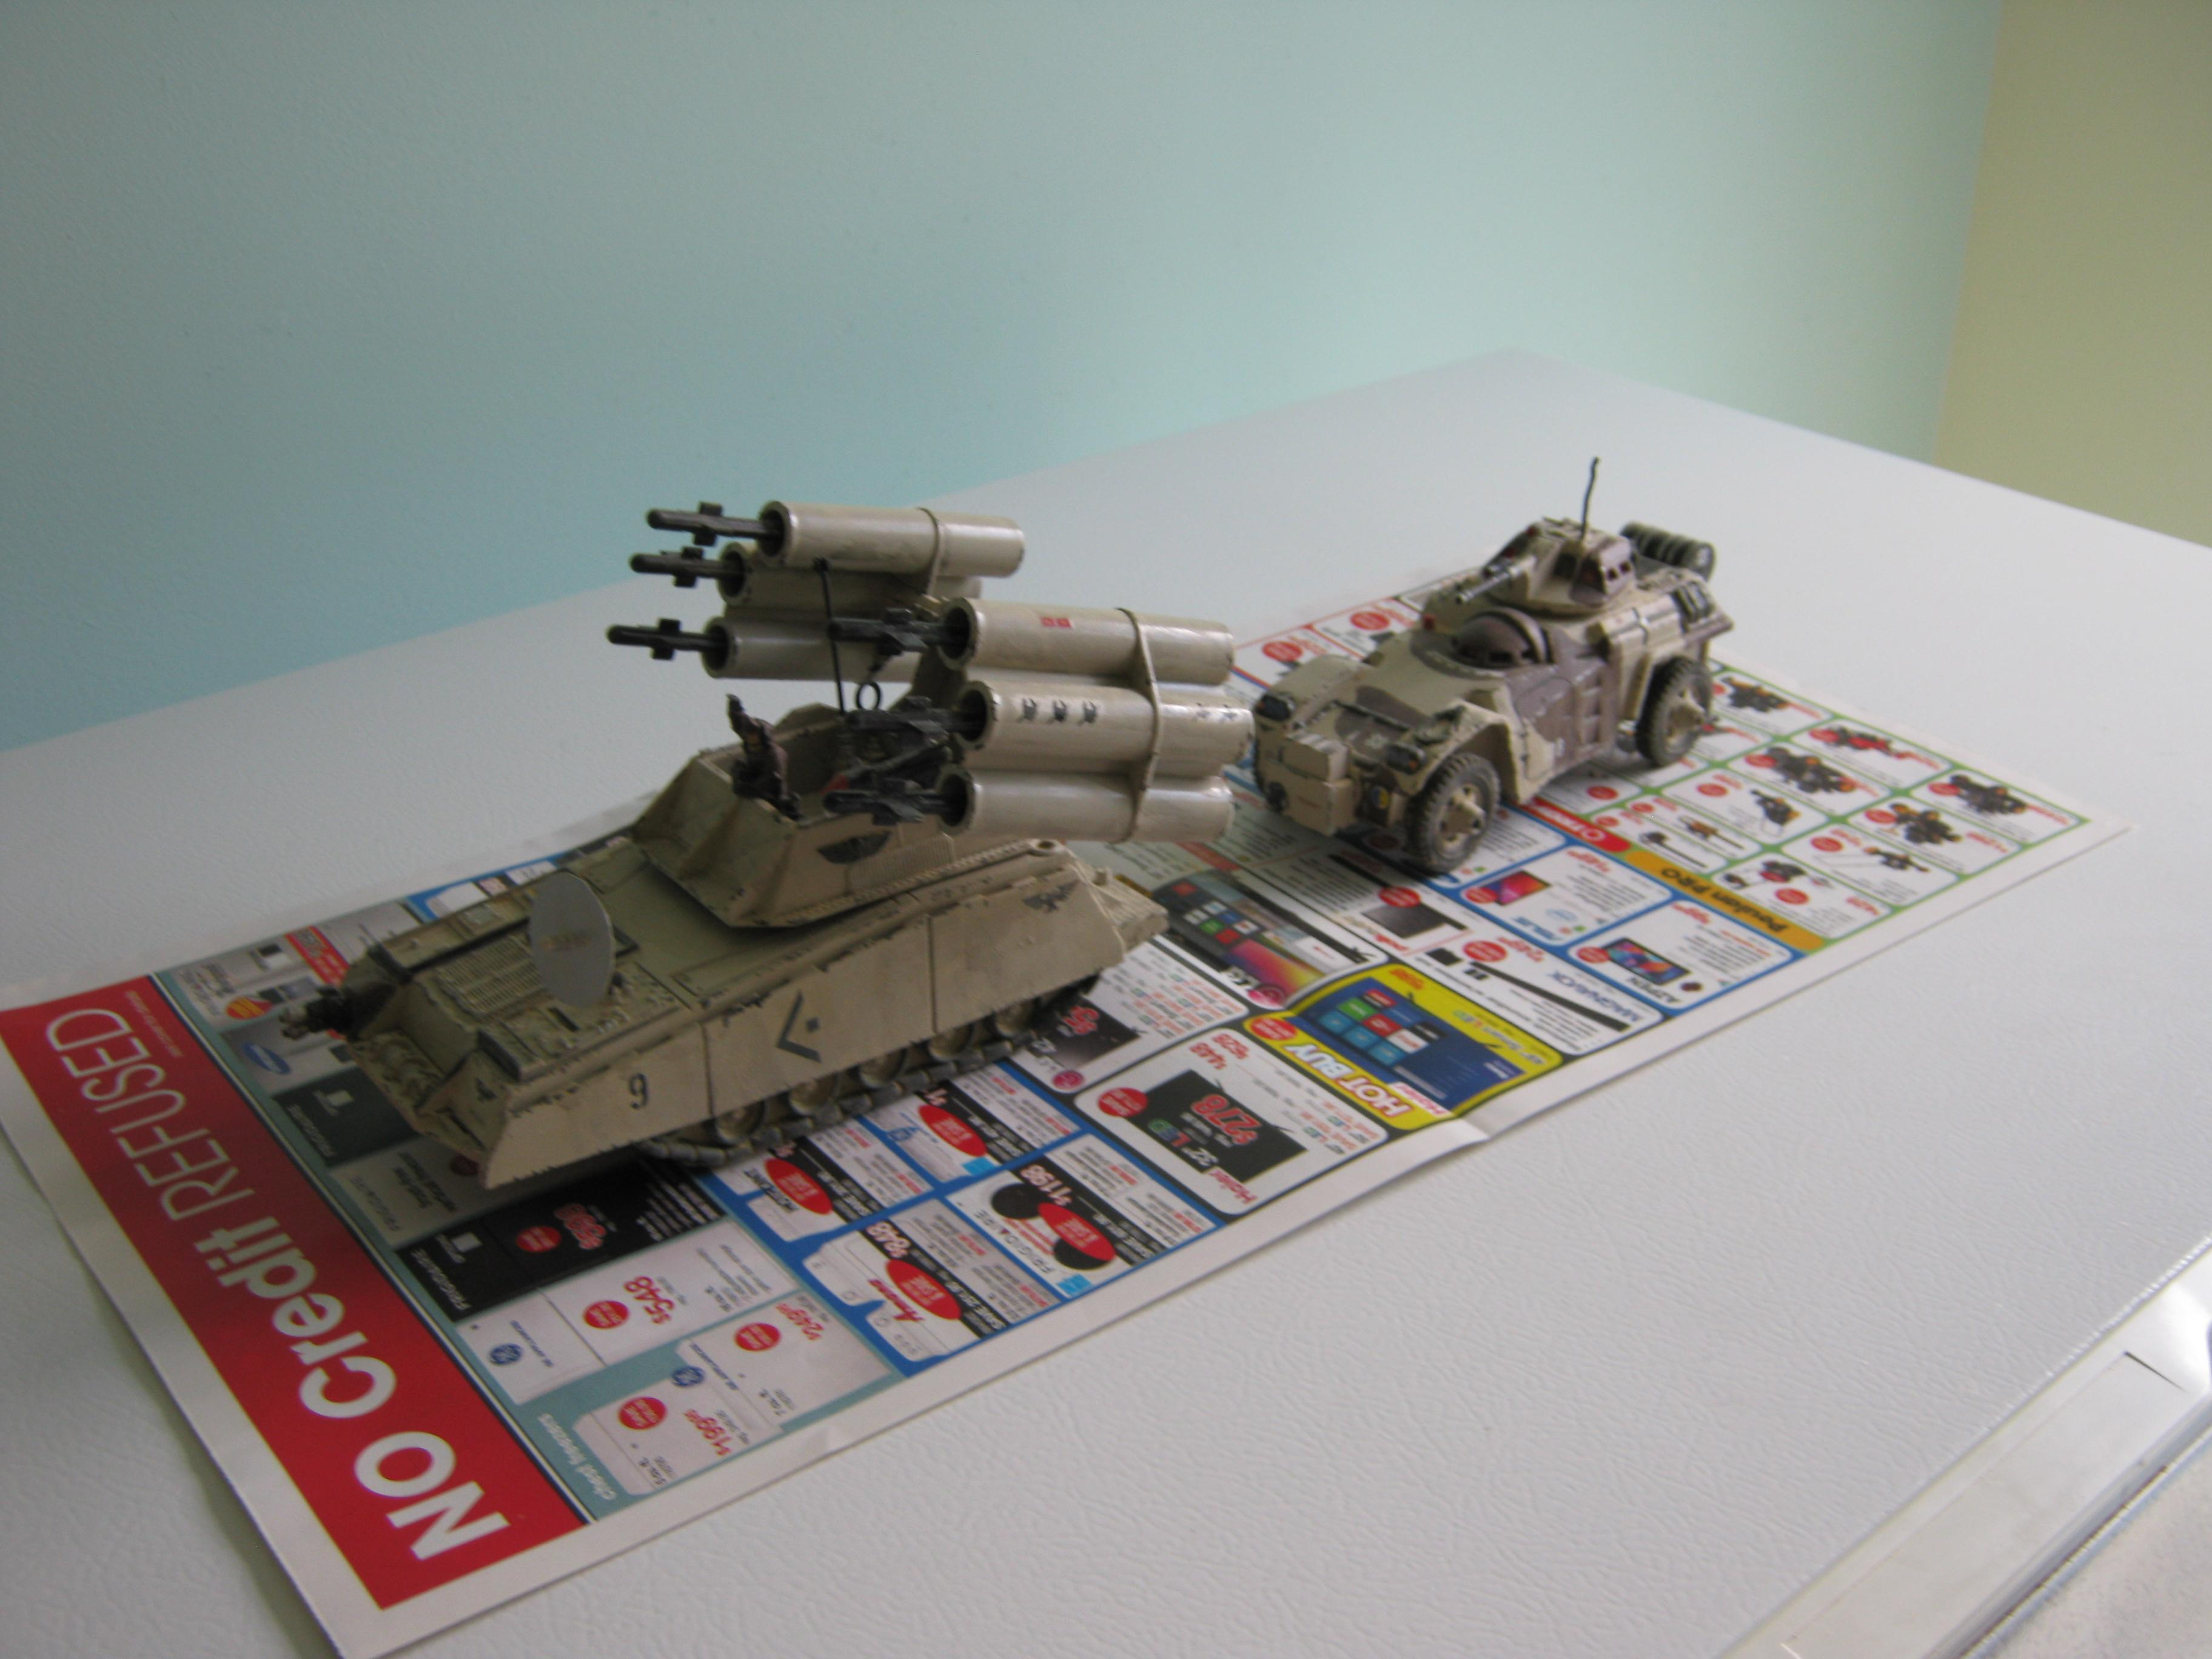 Adv, Afv, Air Defense Vehicle, Armored Car, Artillery, Conversion, Imperial, Mobile Sam System, Processed Plastics Company, Self-propelled, Timmee Toys, Toy